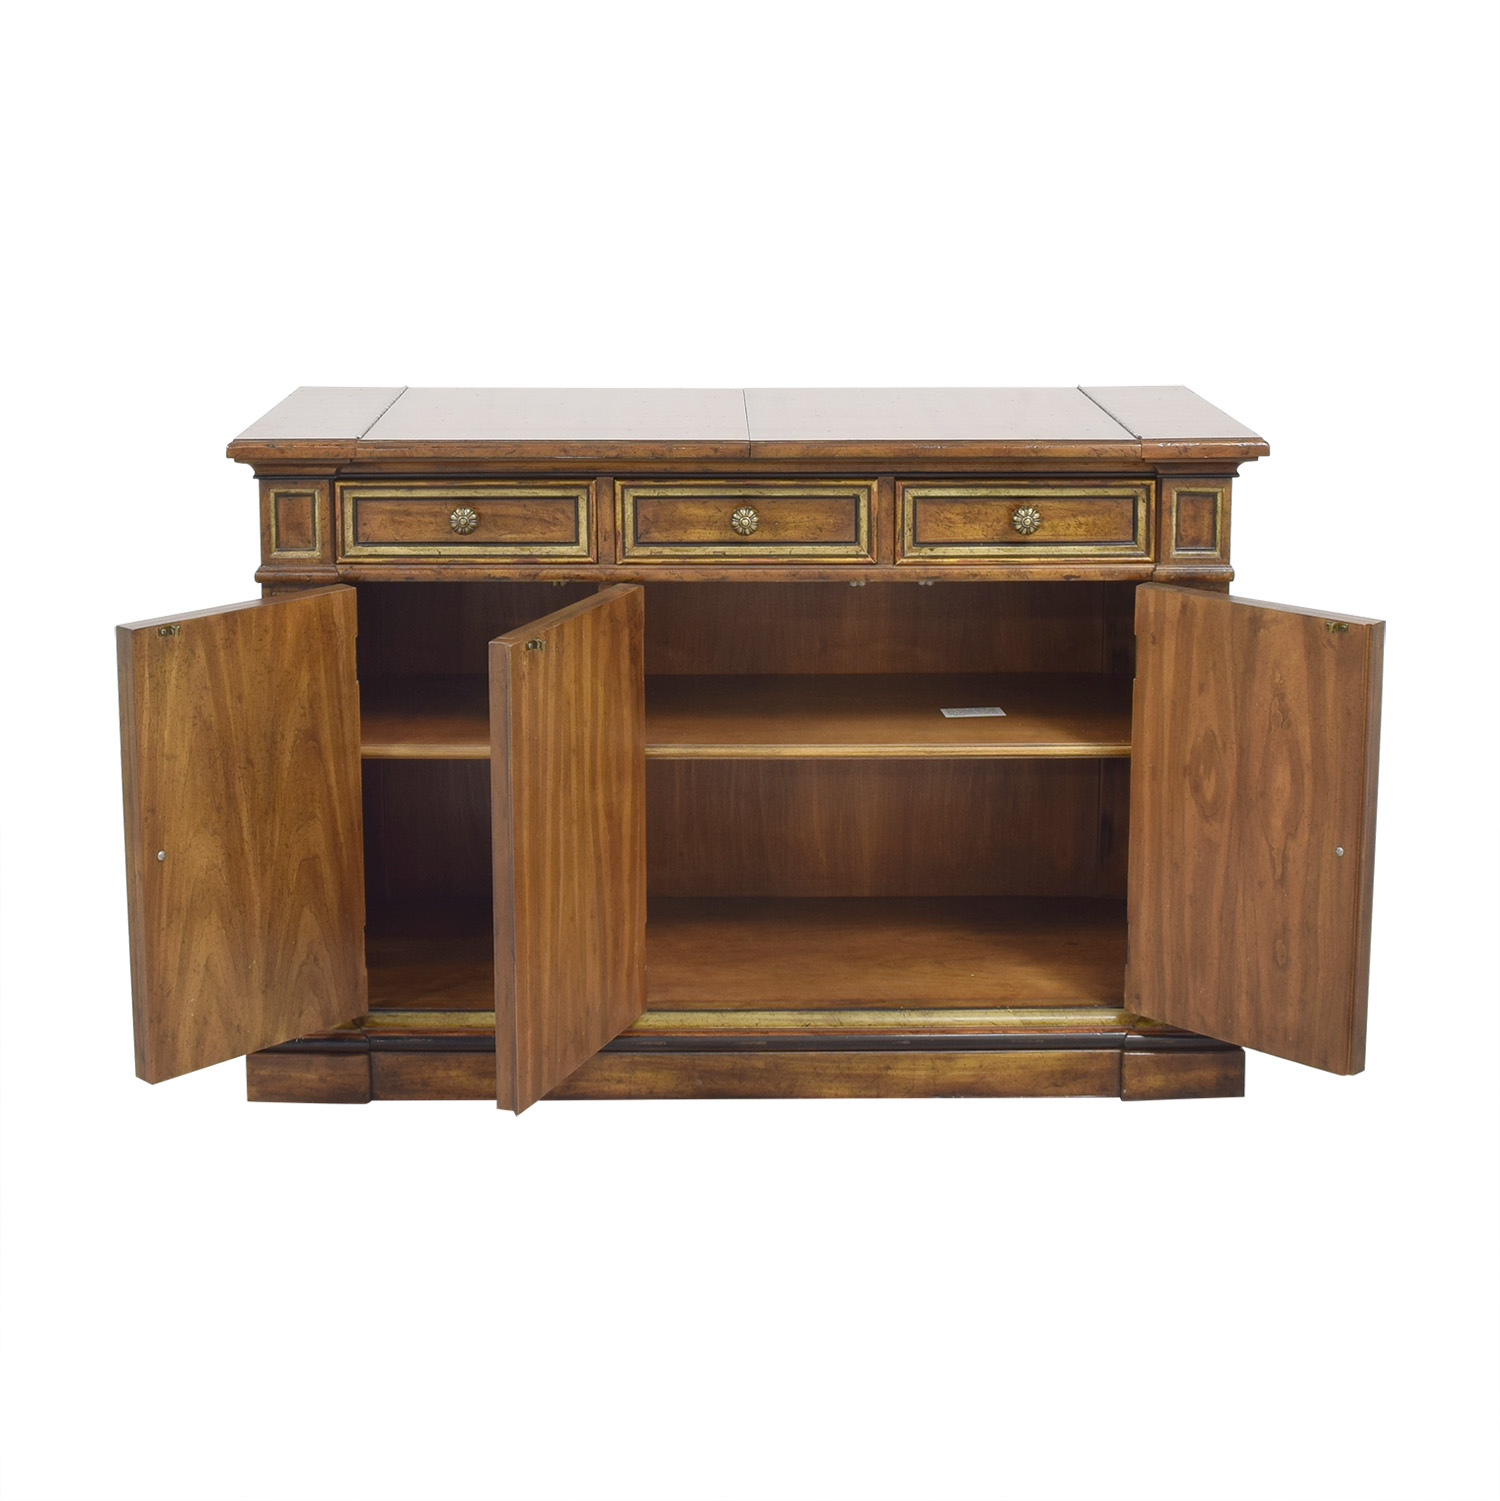 Heritage Heritage Furniture Buffet second hand